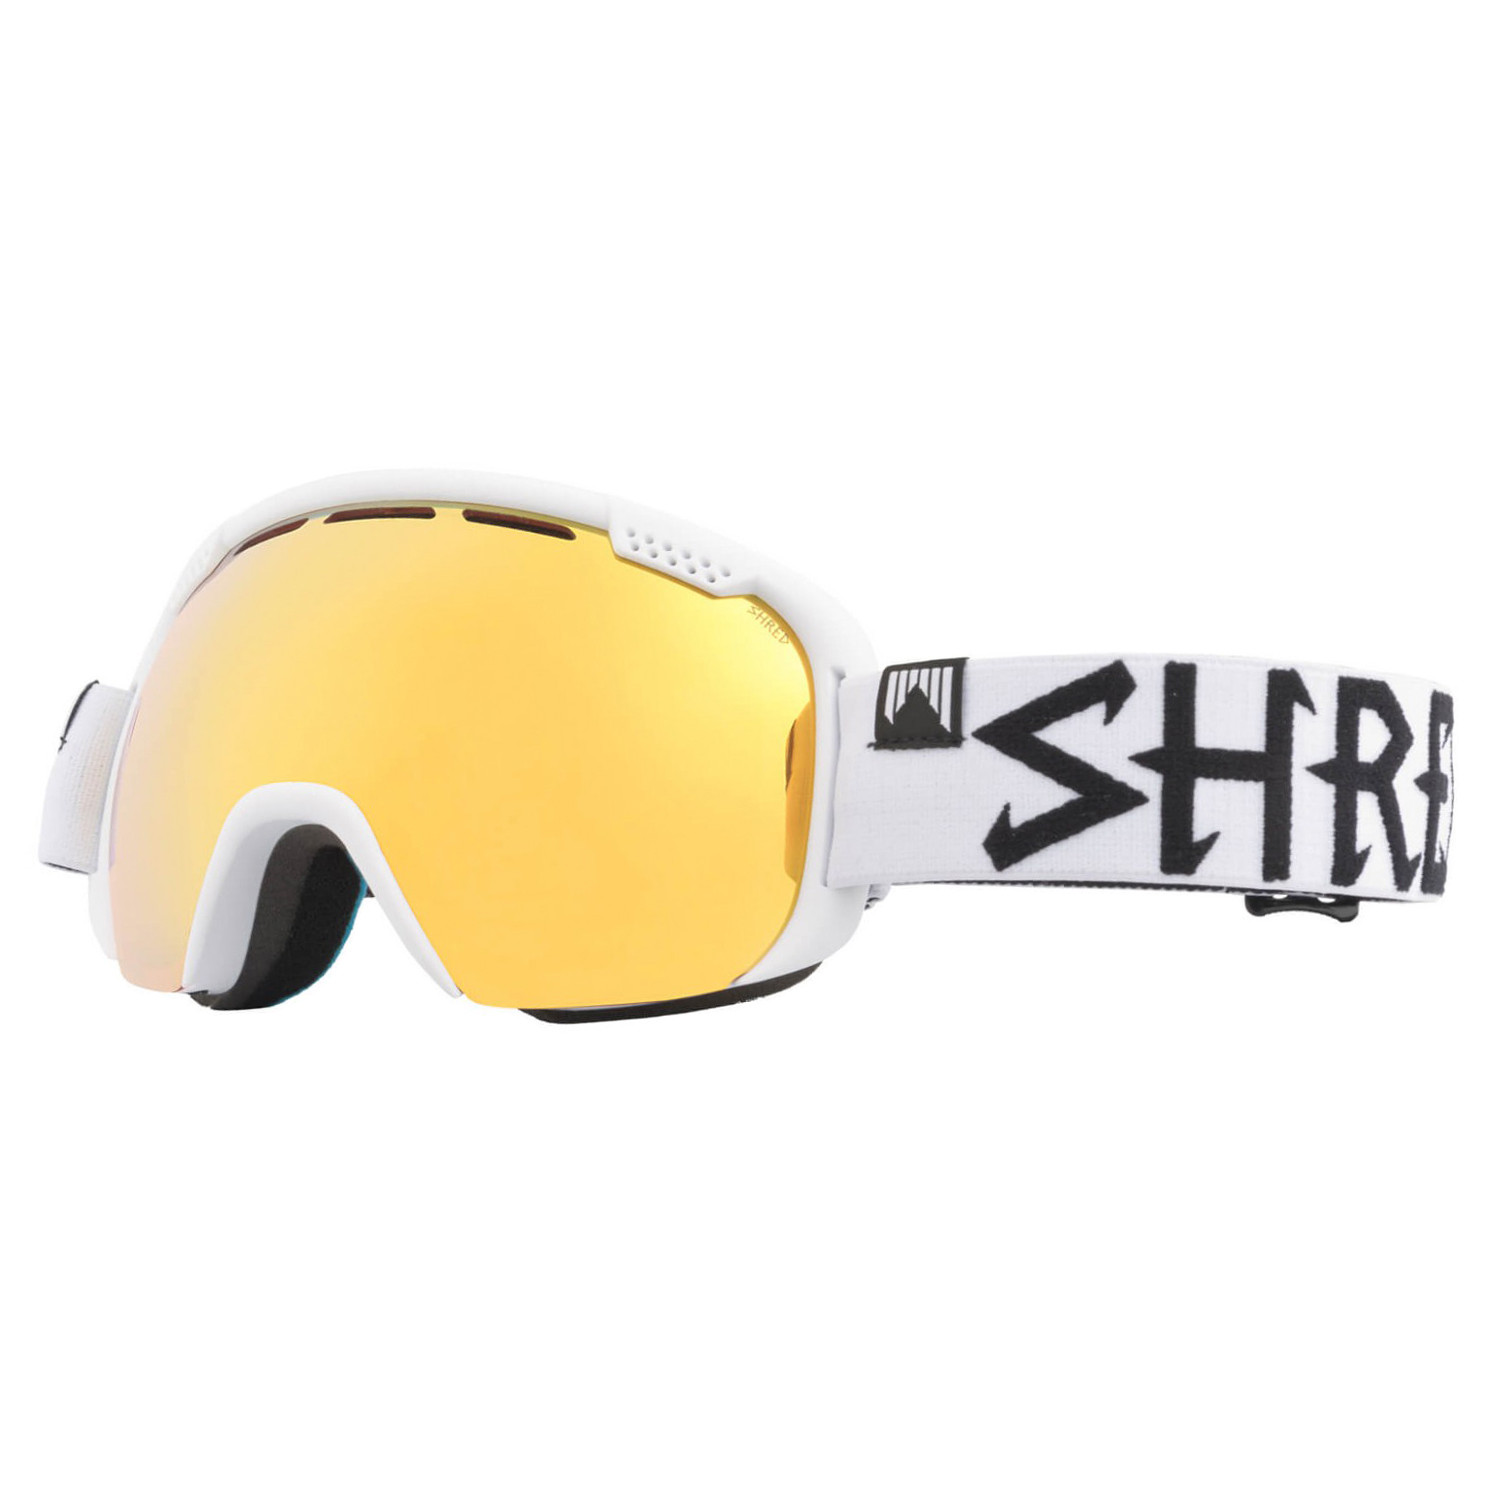 Smartefy Masque Ski Adulte